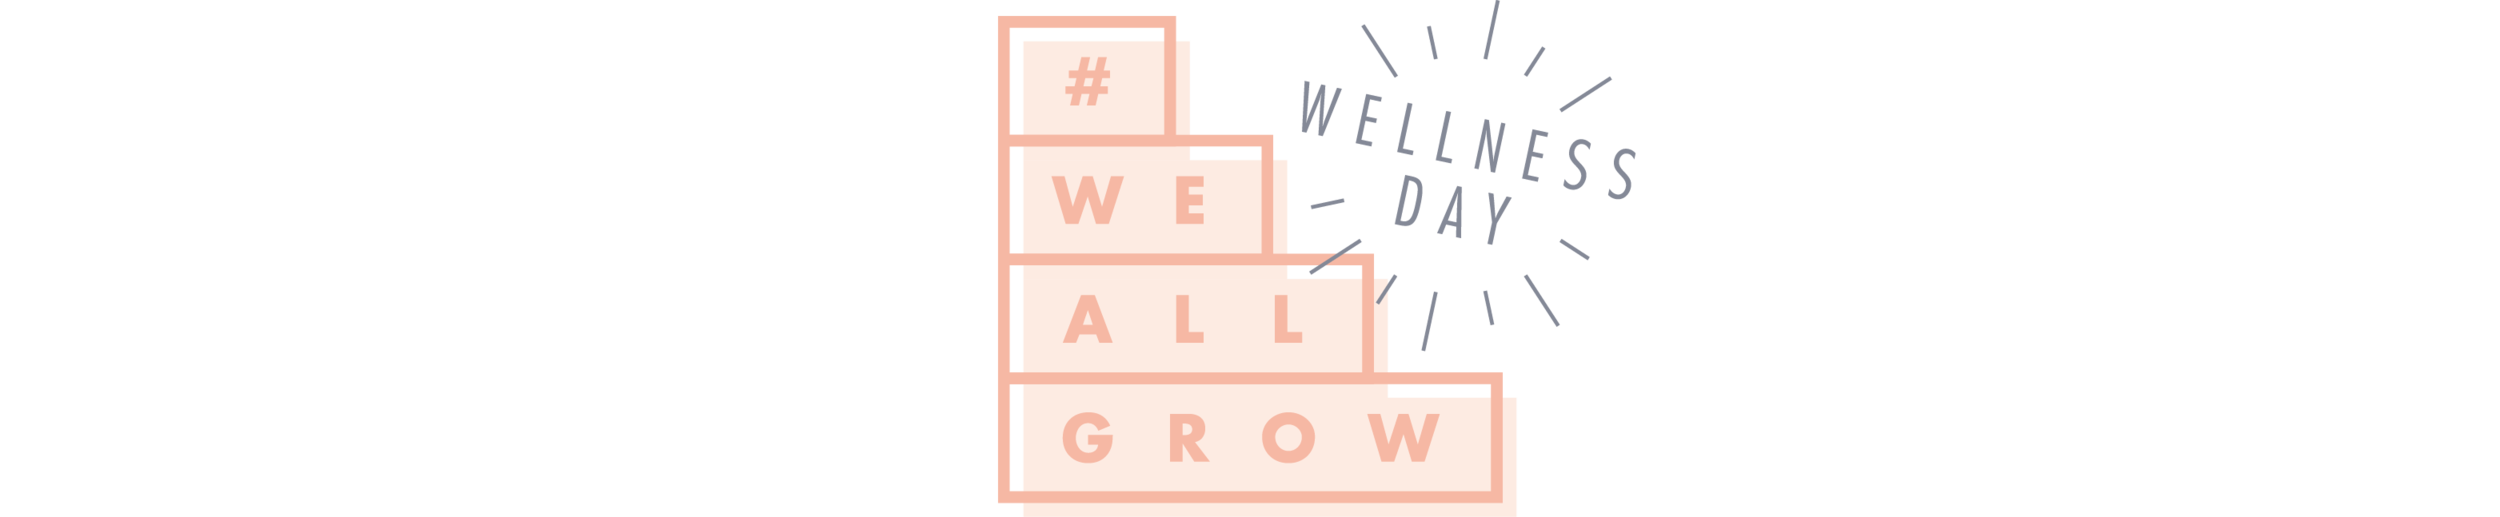 WAG-home_wellness-day-logo.png